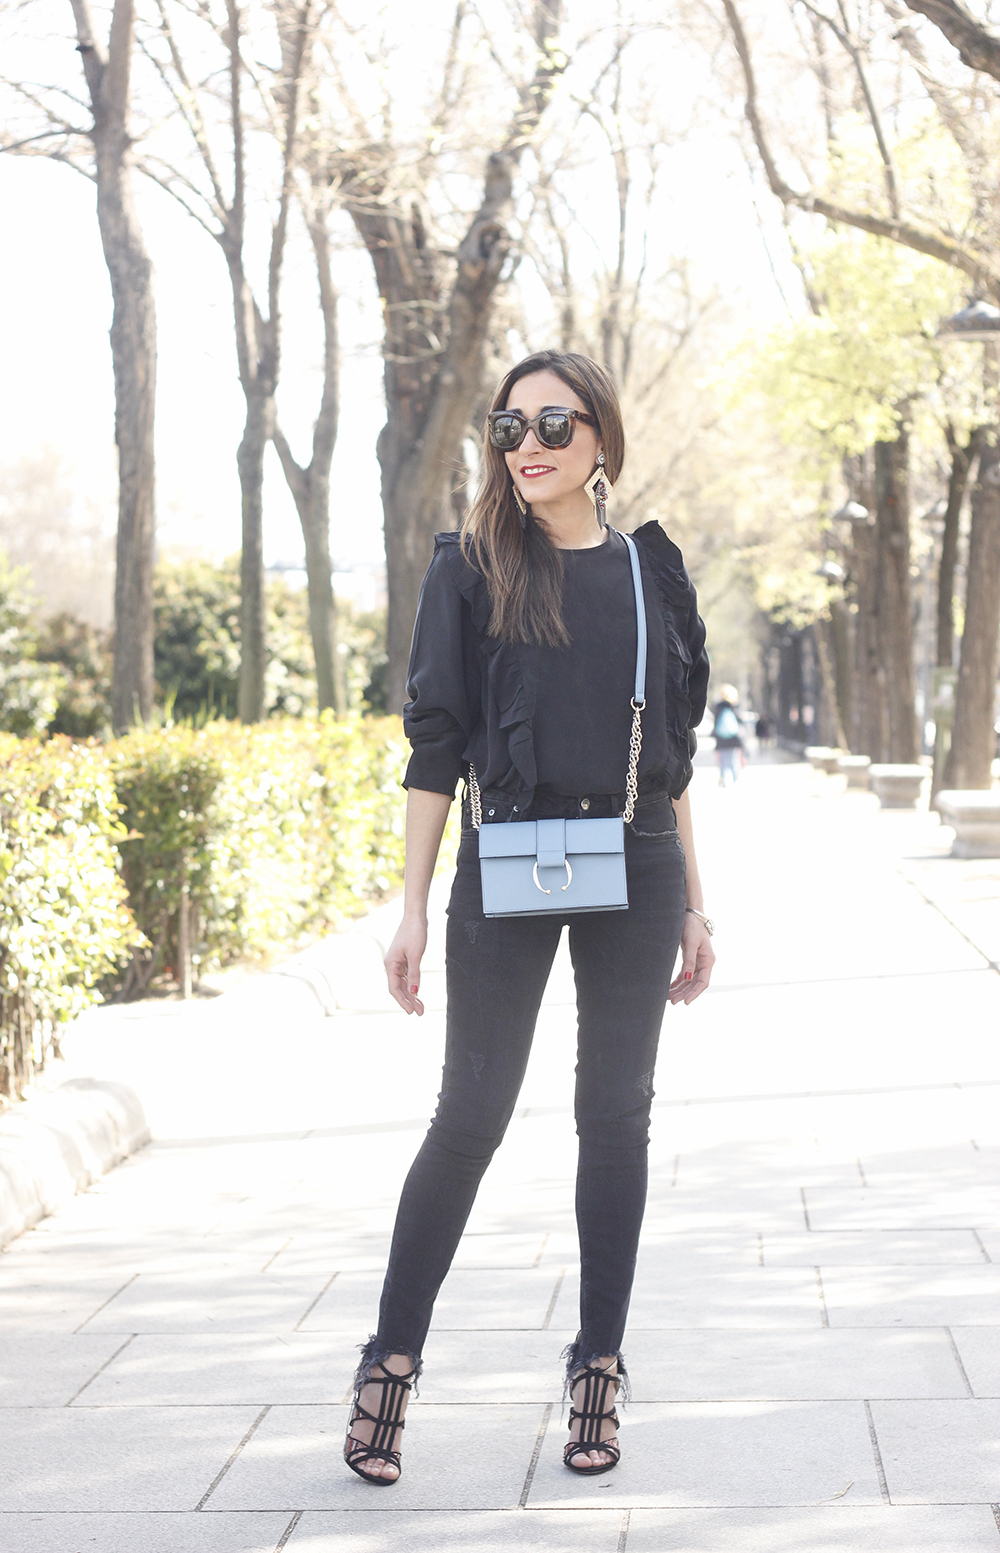 Black ruffled shirt black jeans uterqüe bag earrings sandals outfit style fashion céline sunnies spring10